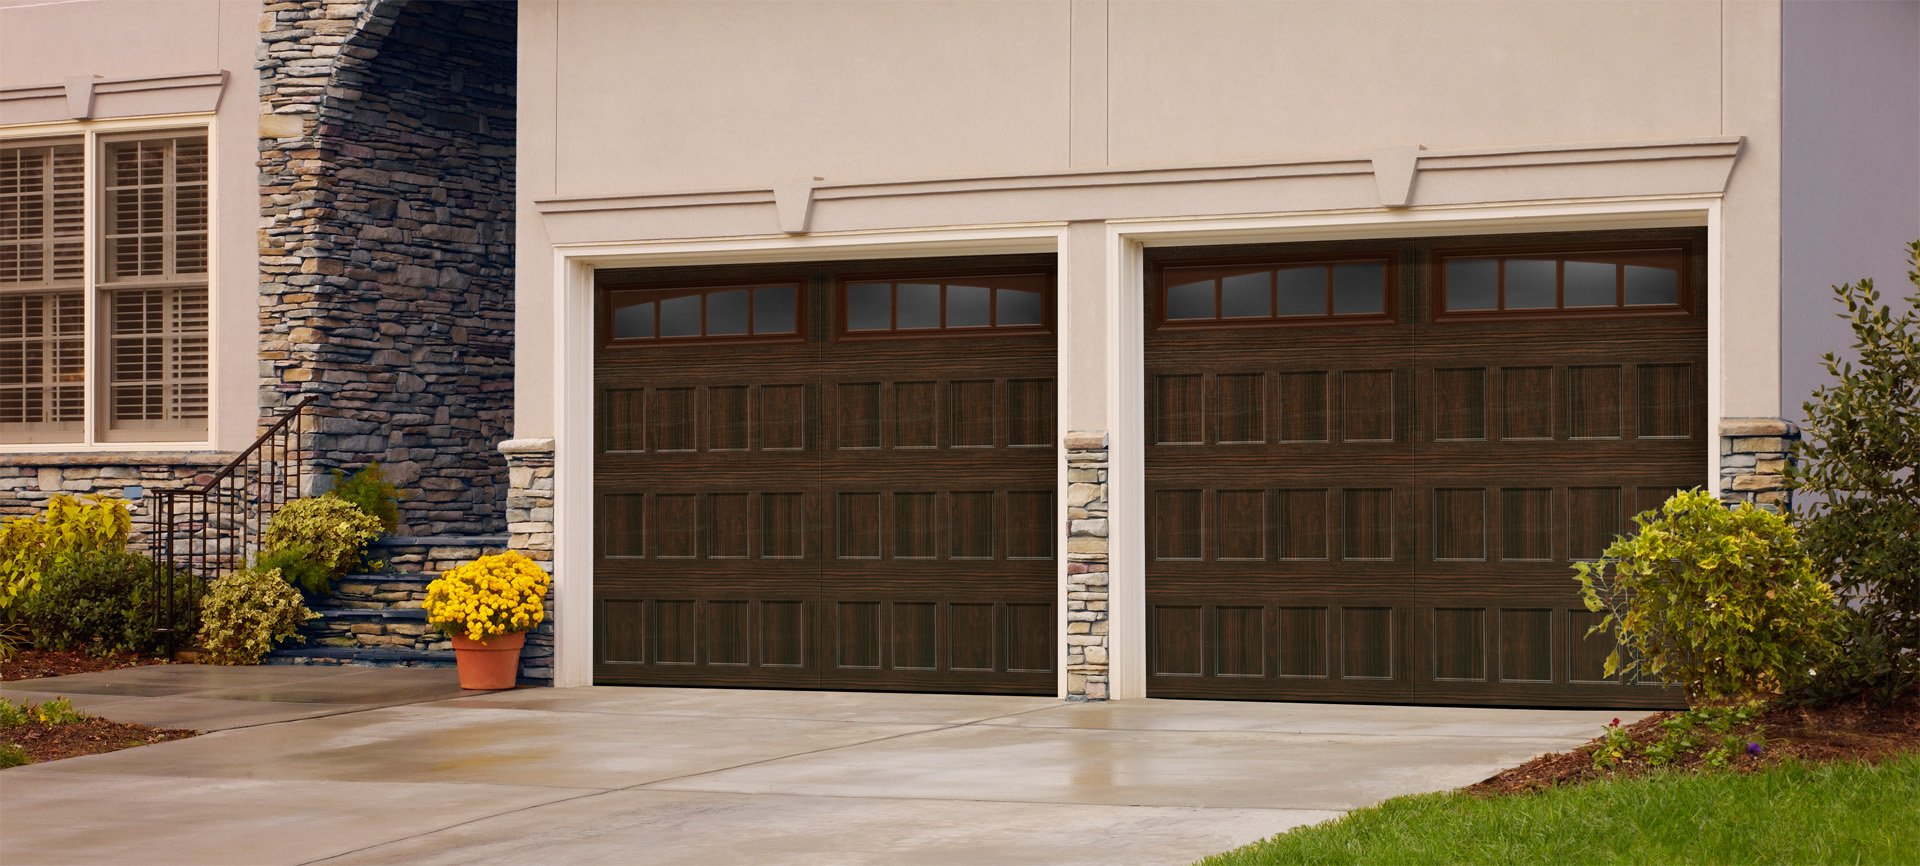 Superbe Garage, Overhead Door Repair Company Central Jersey U2013 NJ Door Master